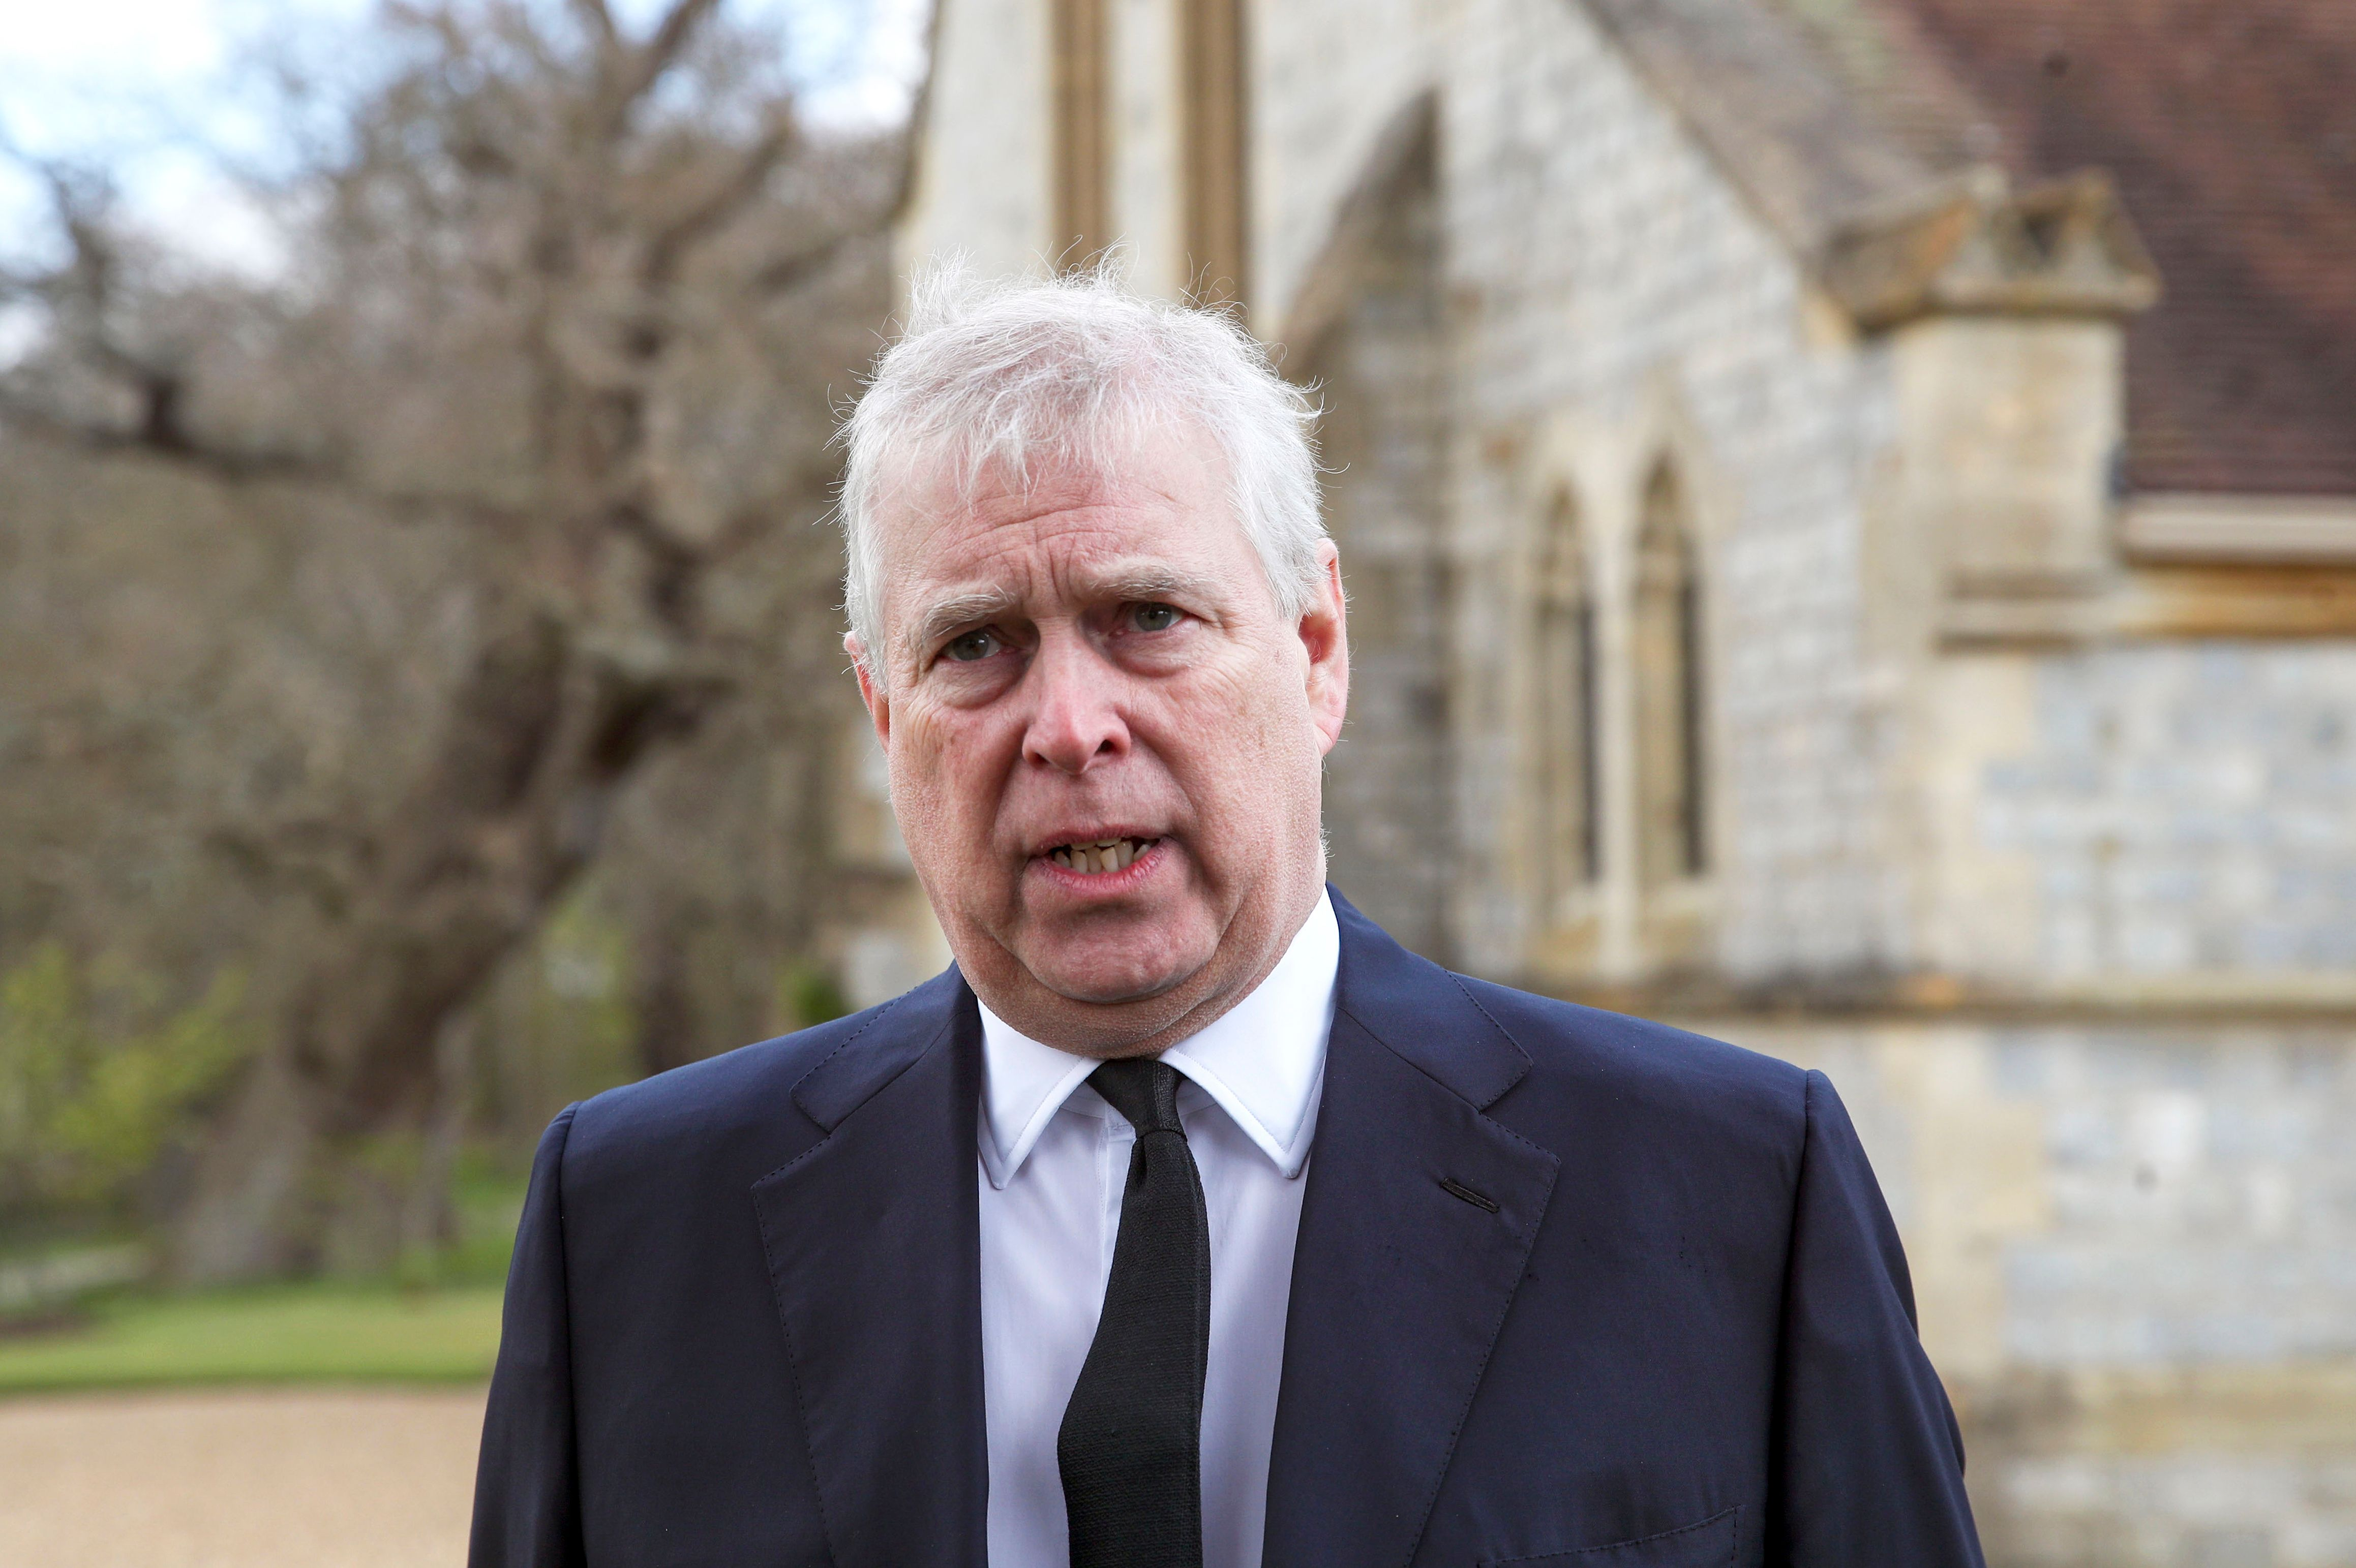 Prince Andrew at the Sunday Service at the Royal Chapel of All Saints, Windsor on April 11, 2021 | Getty Images